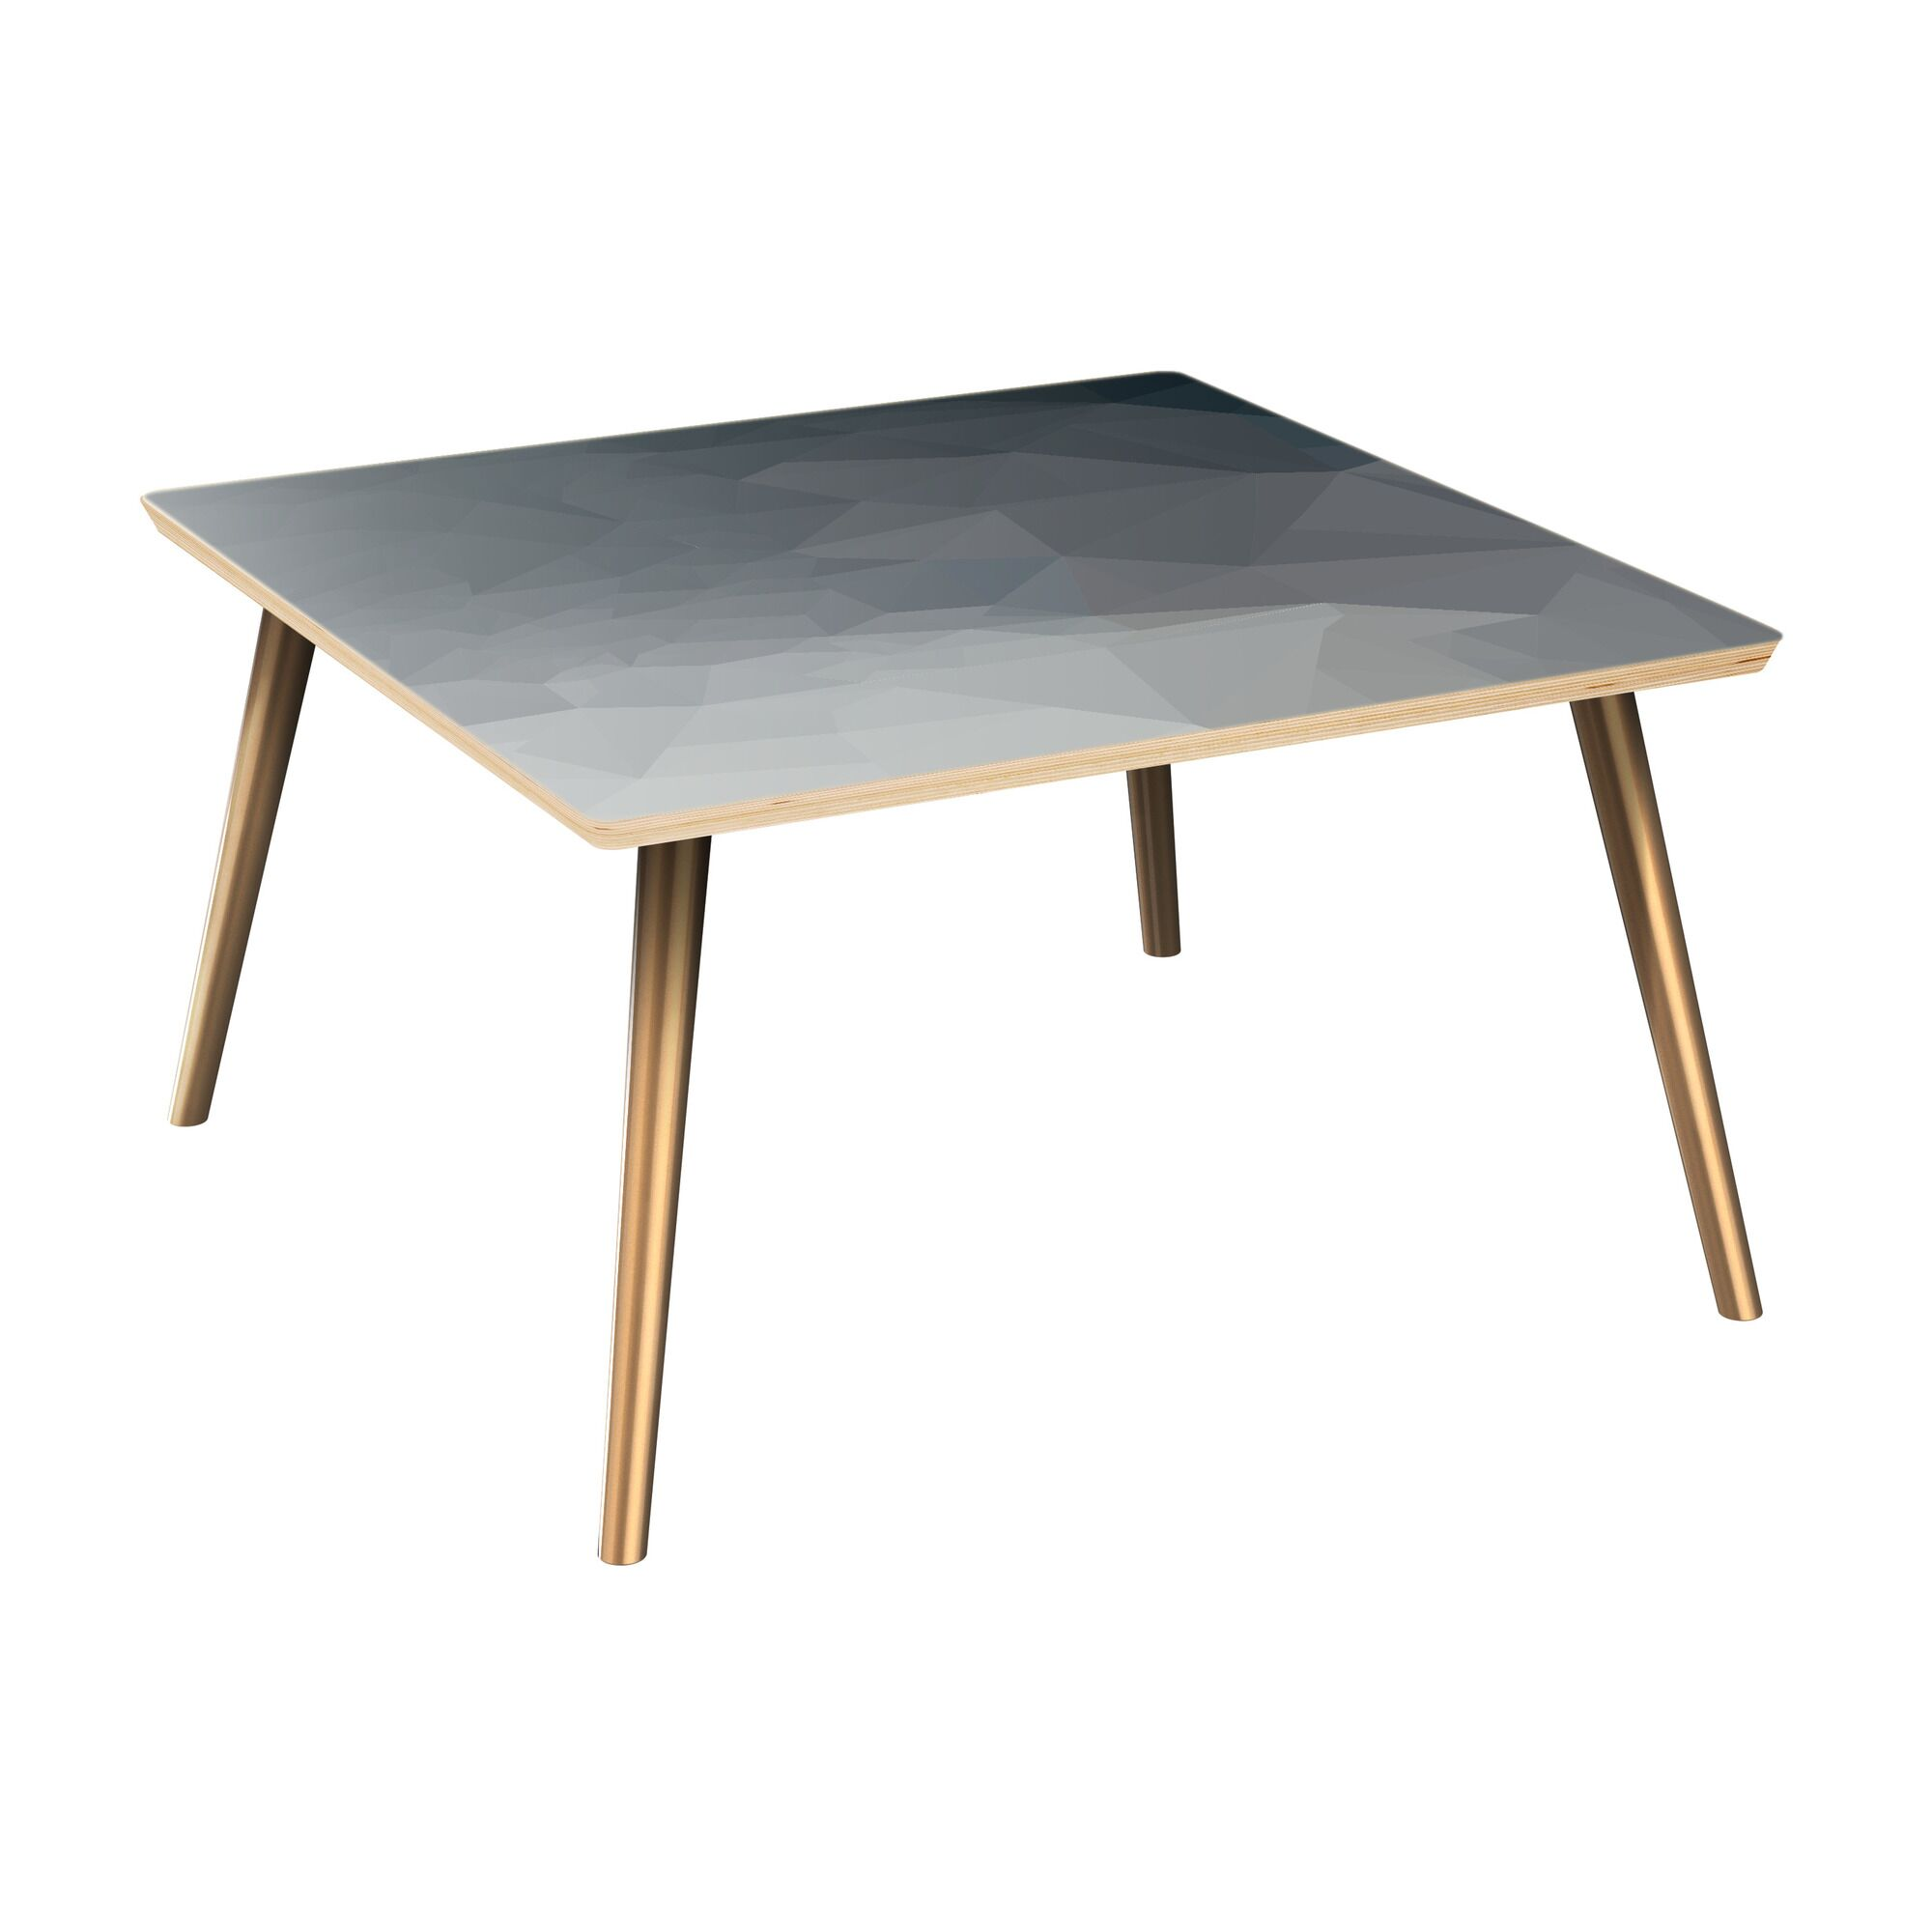 Jered Coffee Table Table Top Boarder Color: Natural, Table Base Color: Brass, Table Top Color: Gray/Black